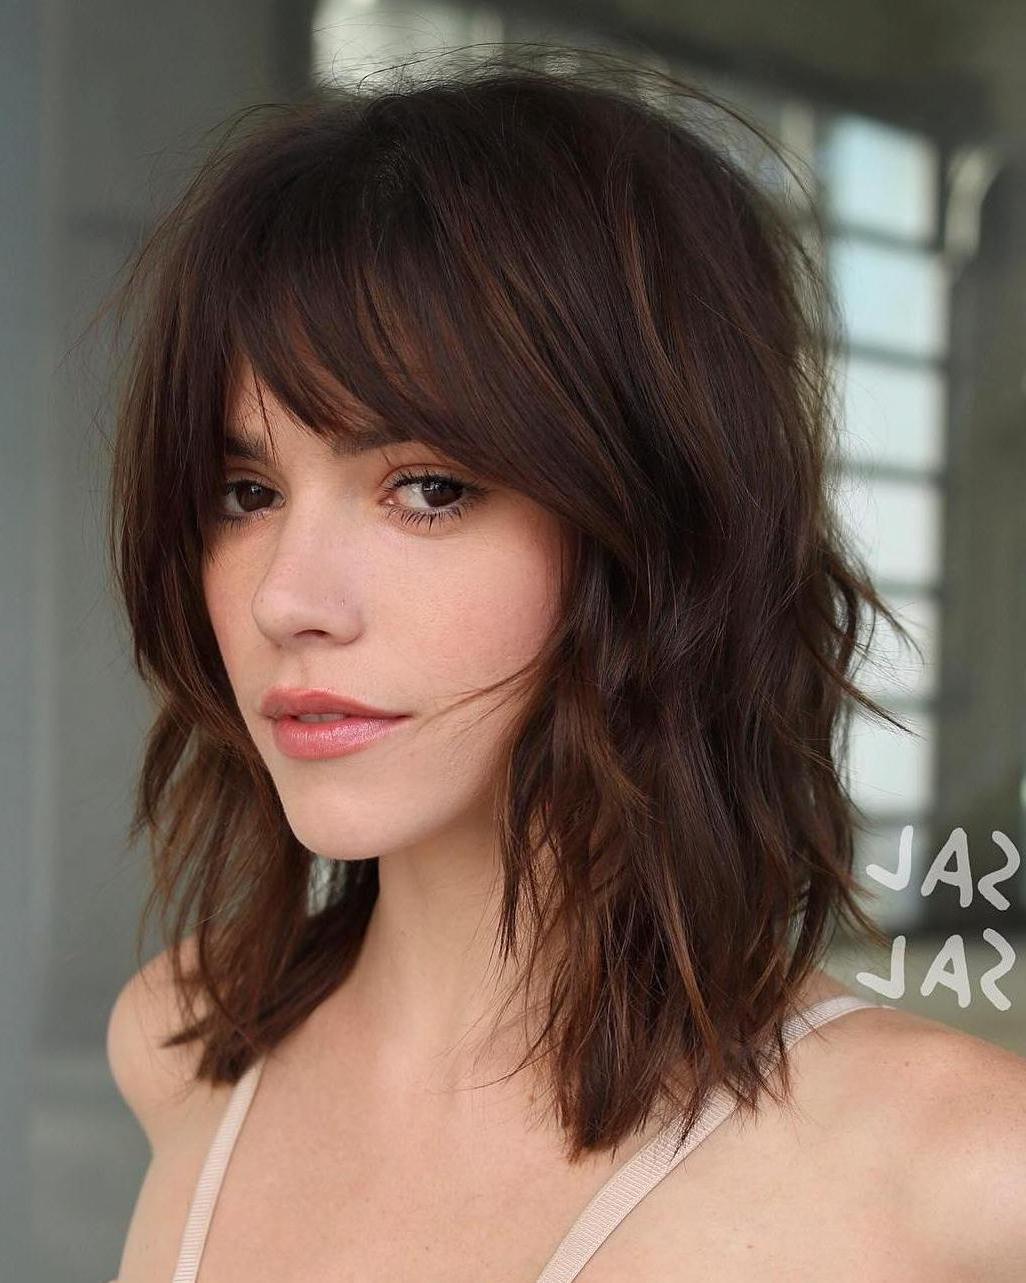 35 Killer Ways To Work Long Bob Haircuts For 2019 With Latest Wavy Long Bob Hairstyles With Bangs (View 3 of 20)